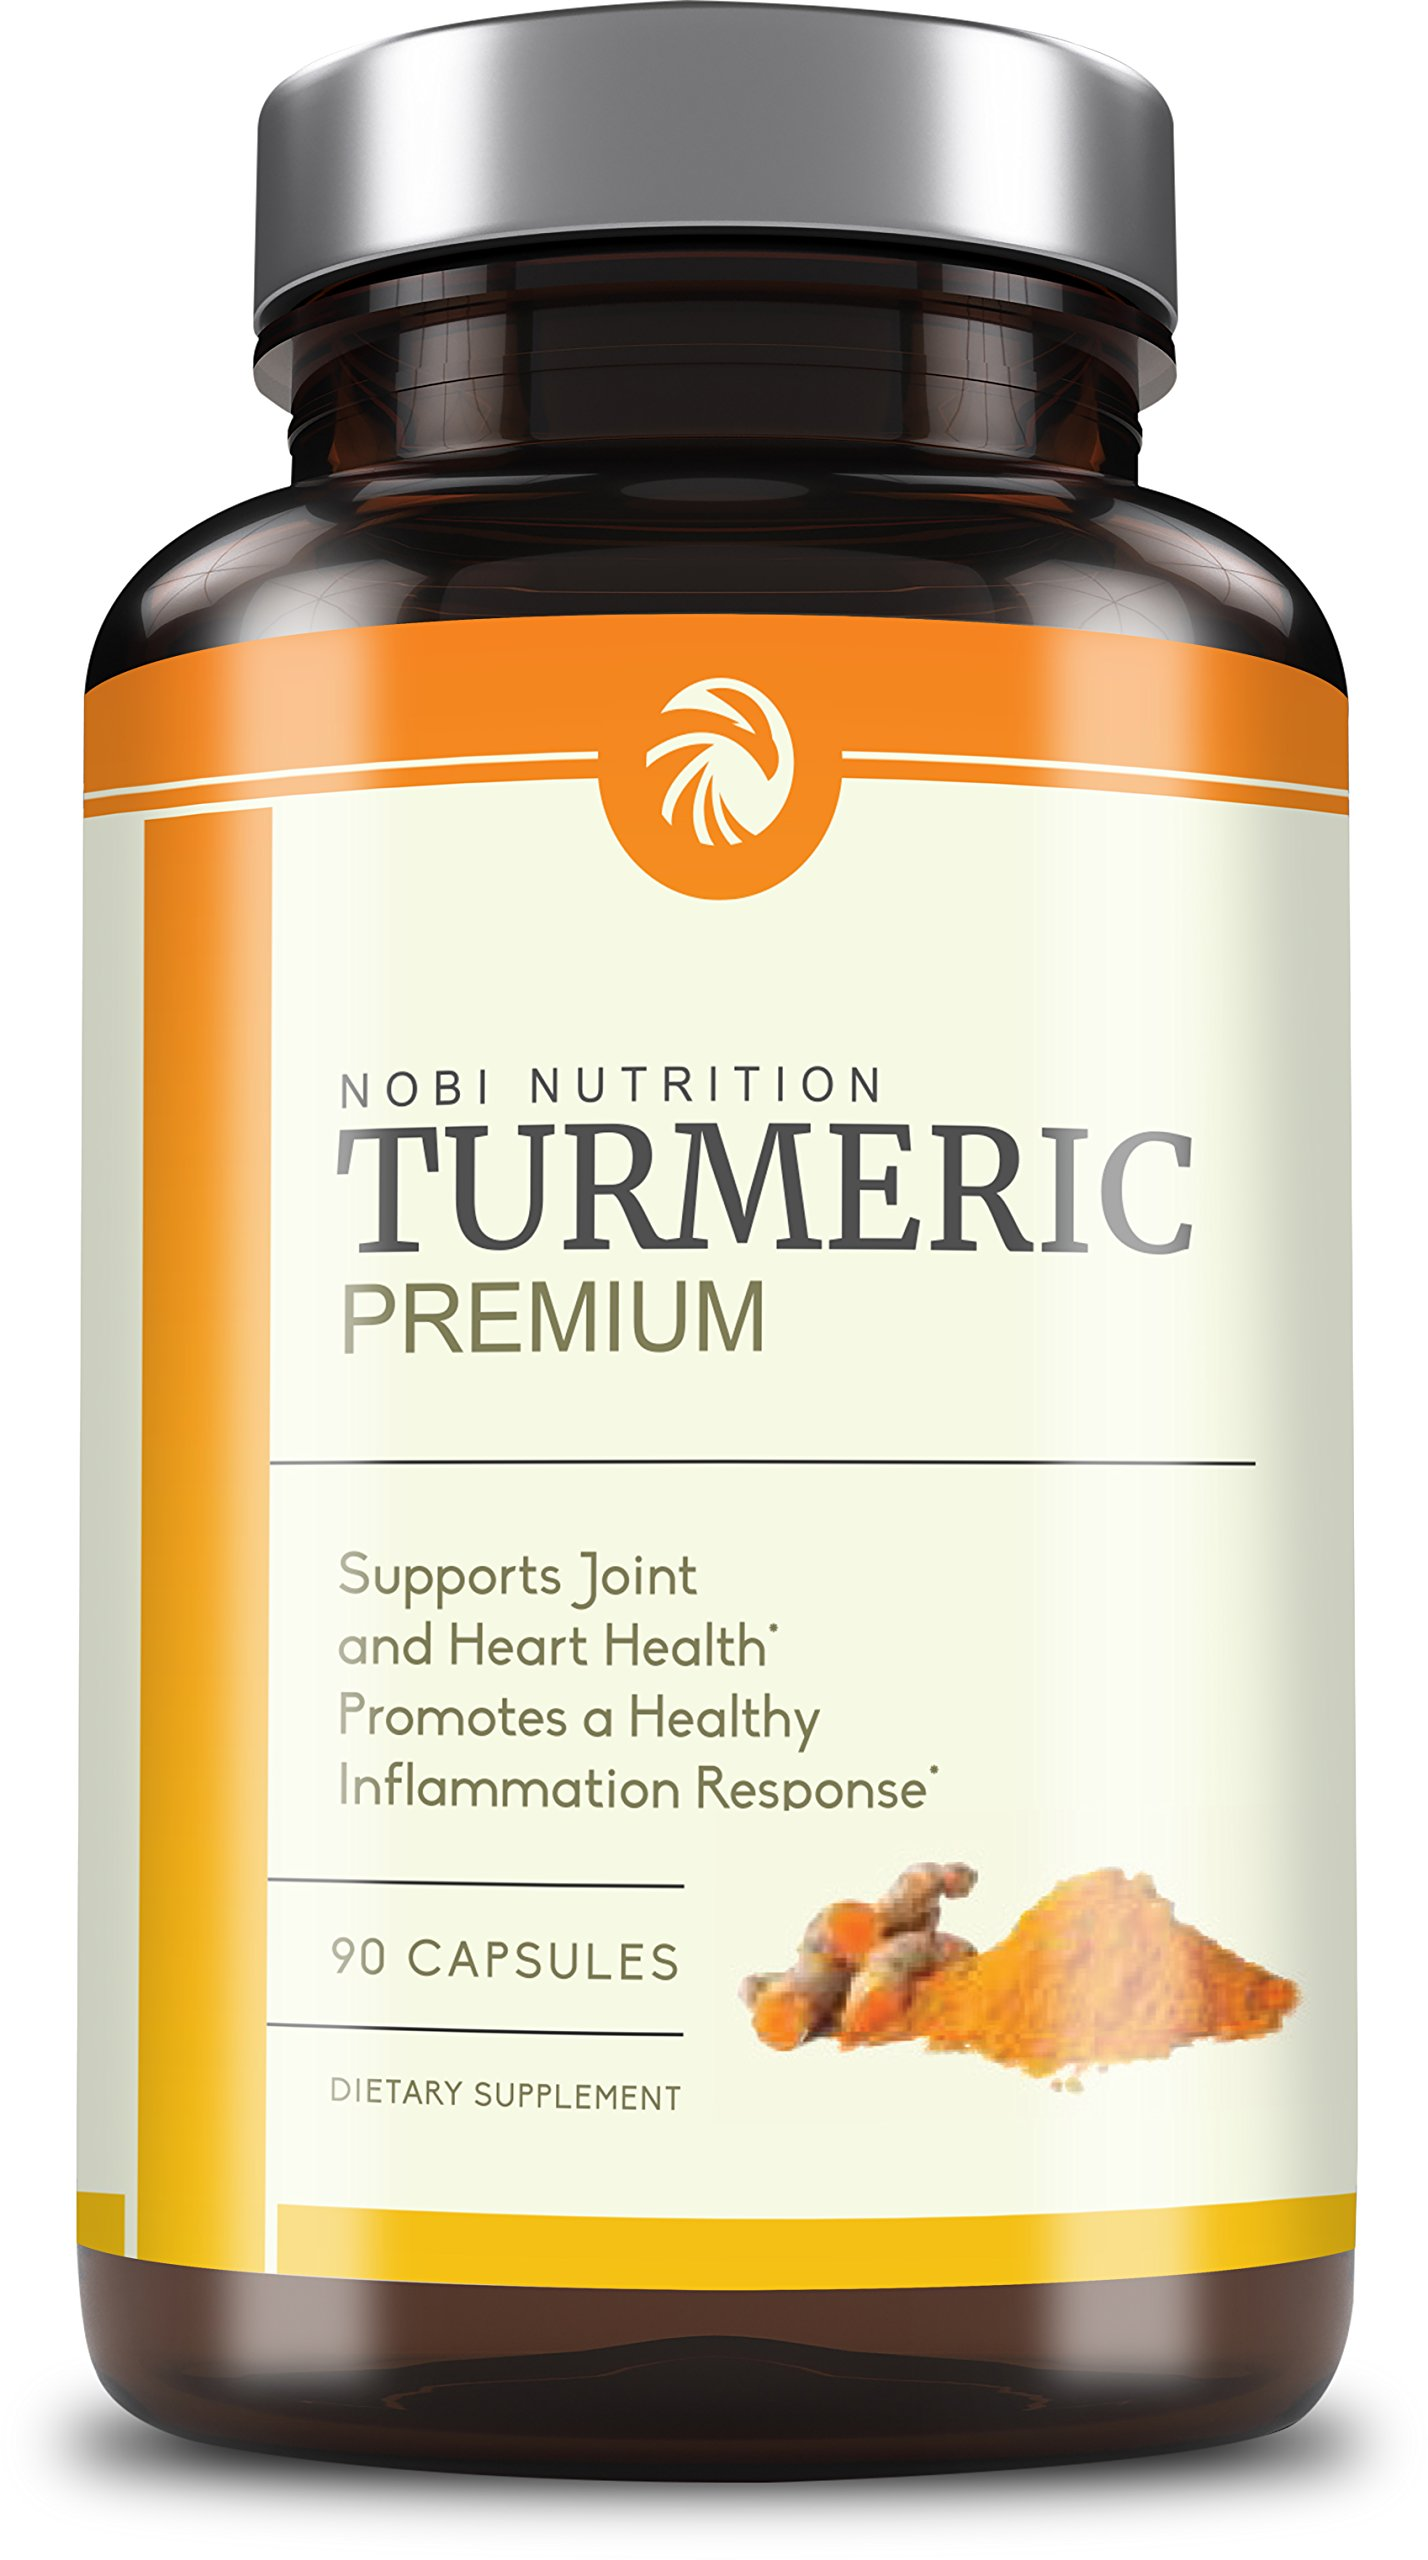 Turmeric Curcumin with Bioperine 1500mg - Extra Strength Pain Relief & Joint Support with 95% Curcuminoids - Premium Supplement, Non-GMO, Vegetarian Capsule with Black Pepper